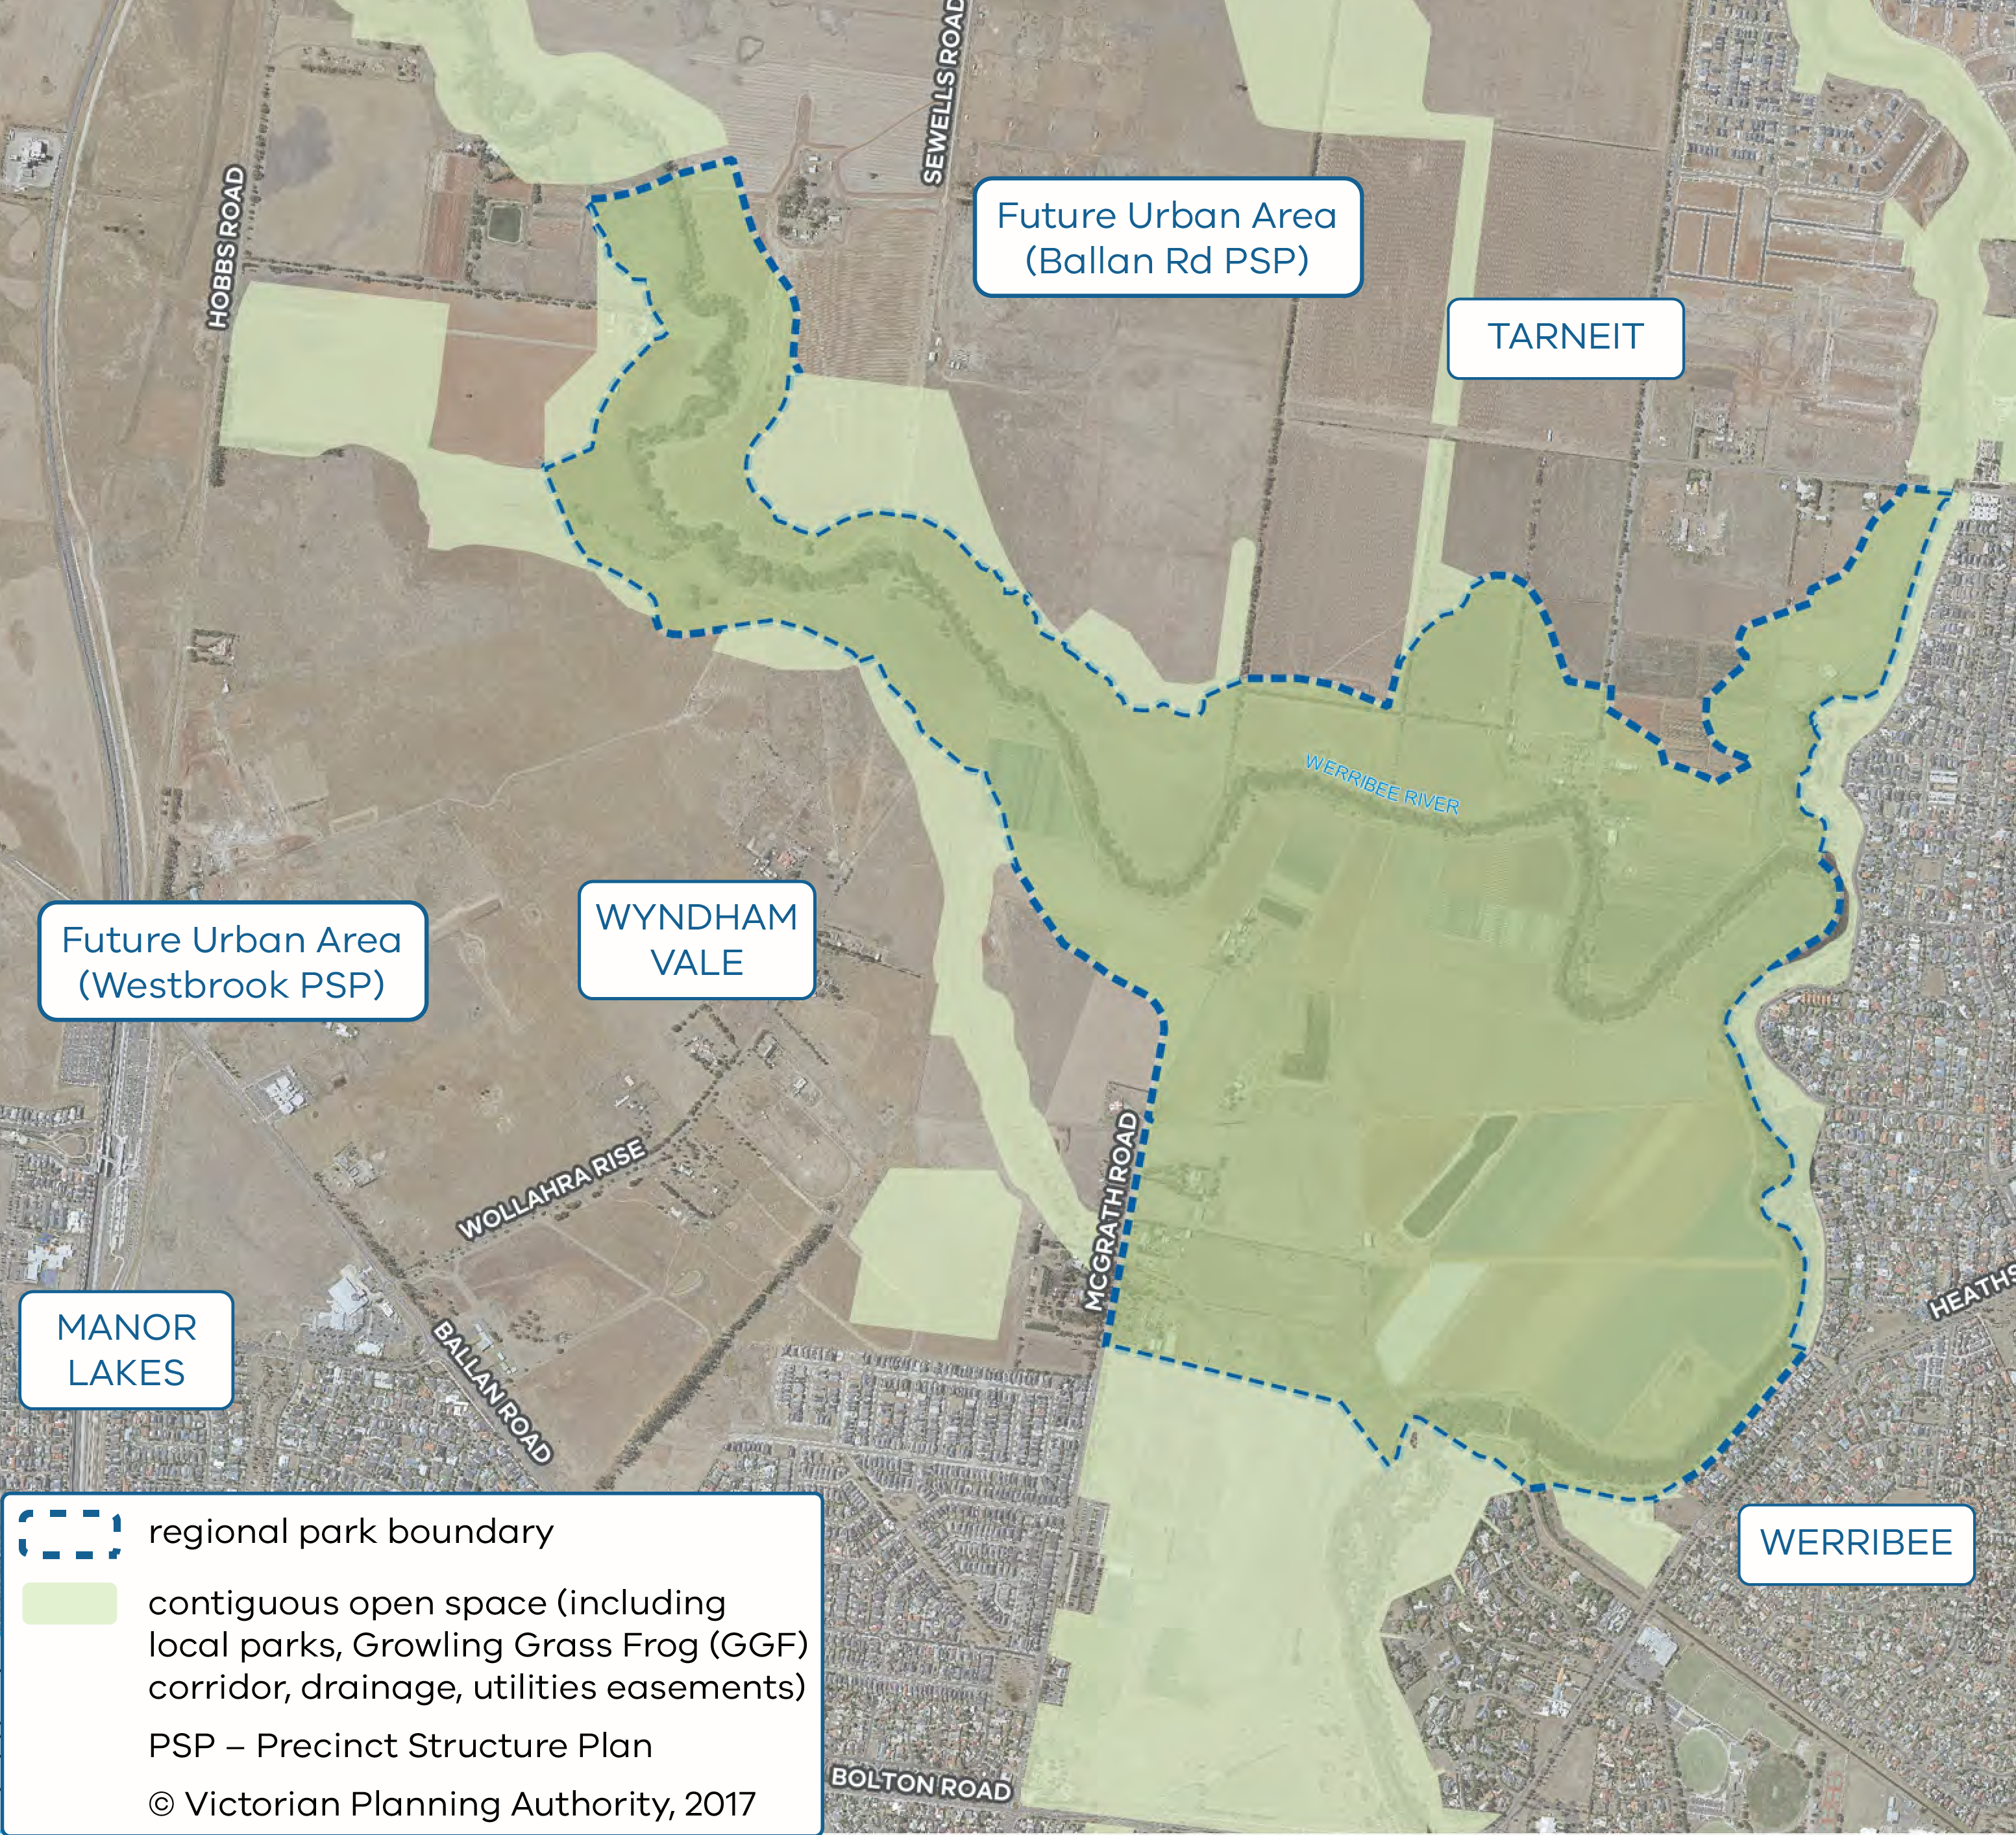 Map of the Werribee township boundary